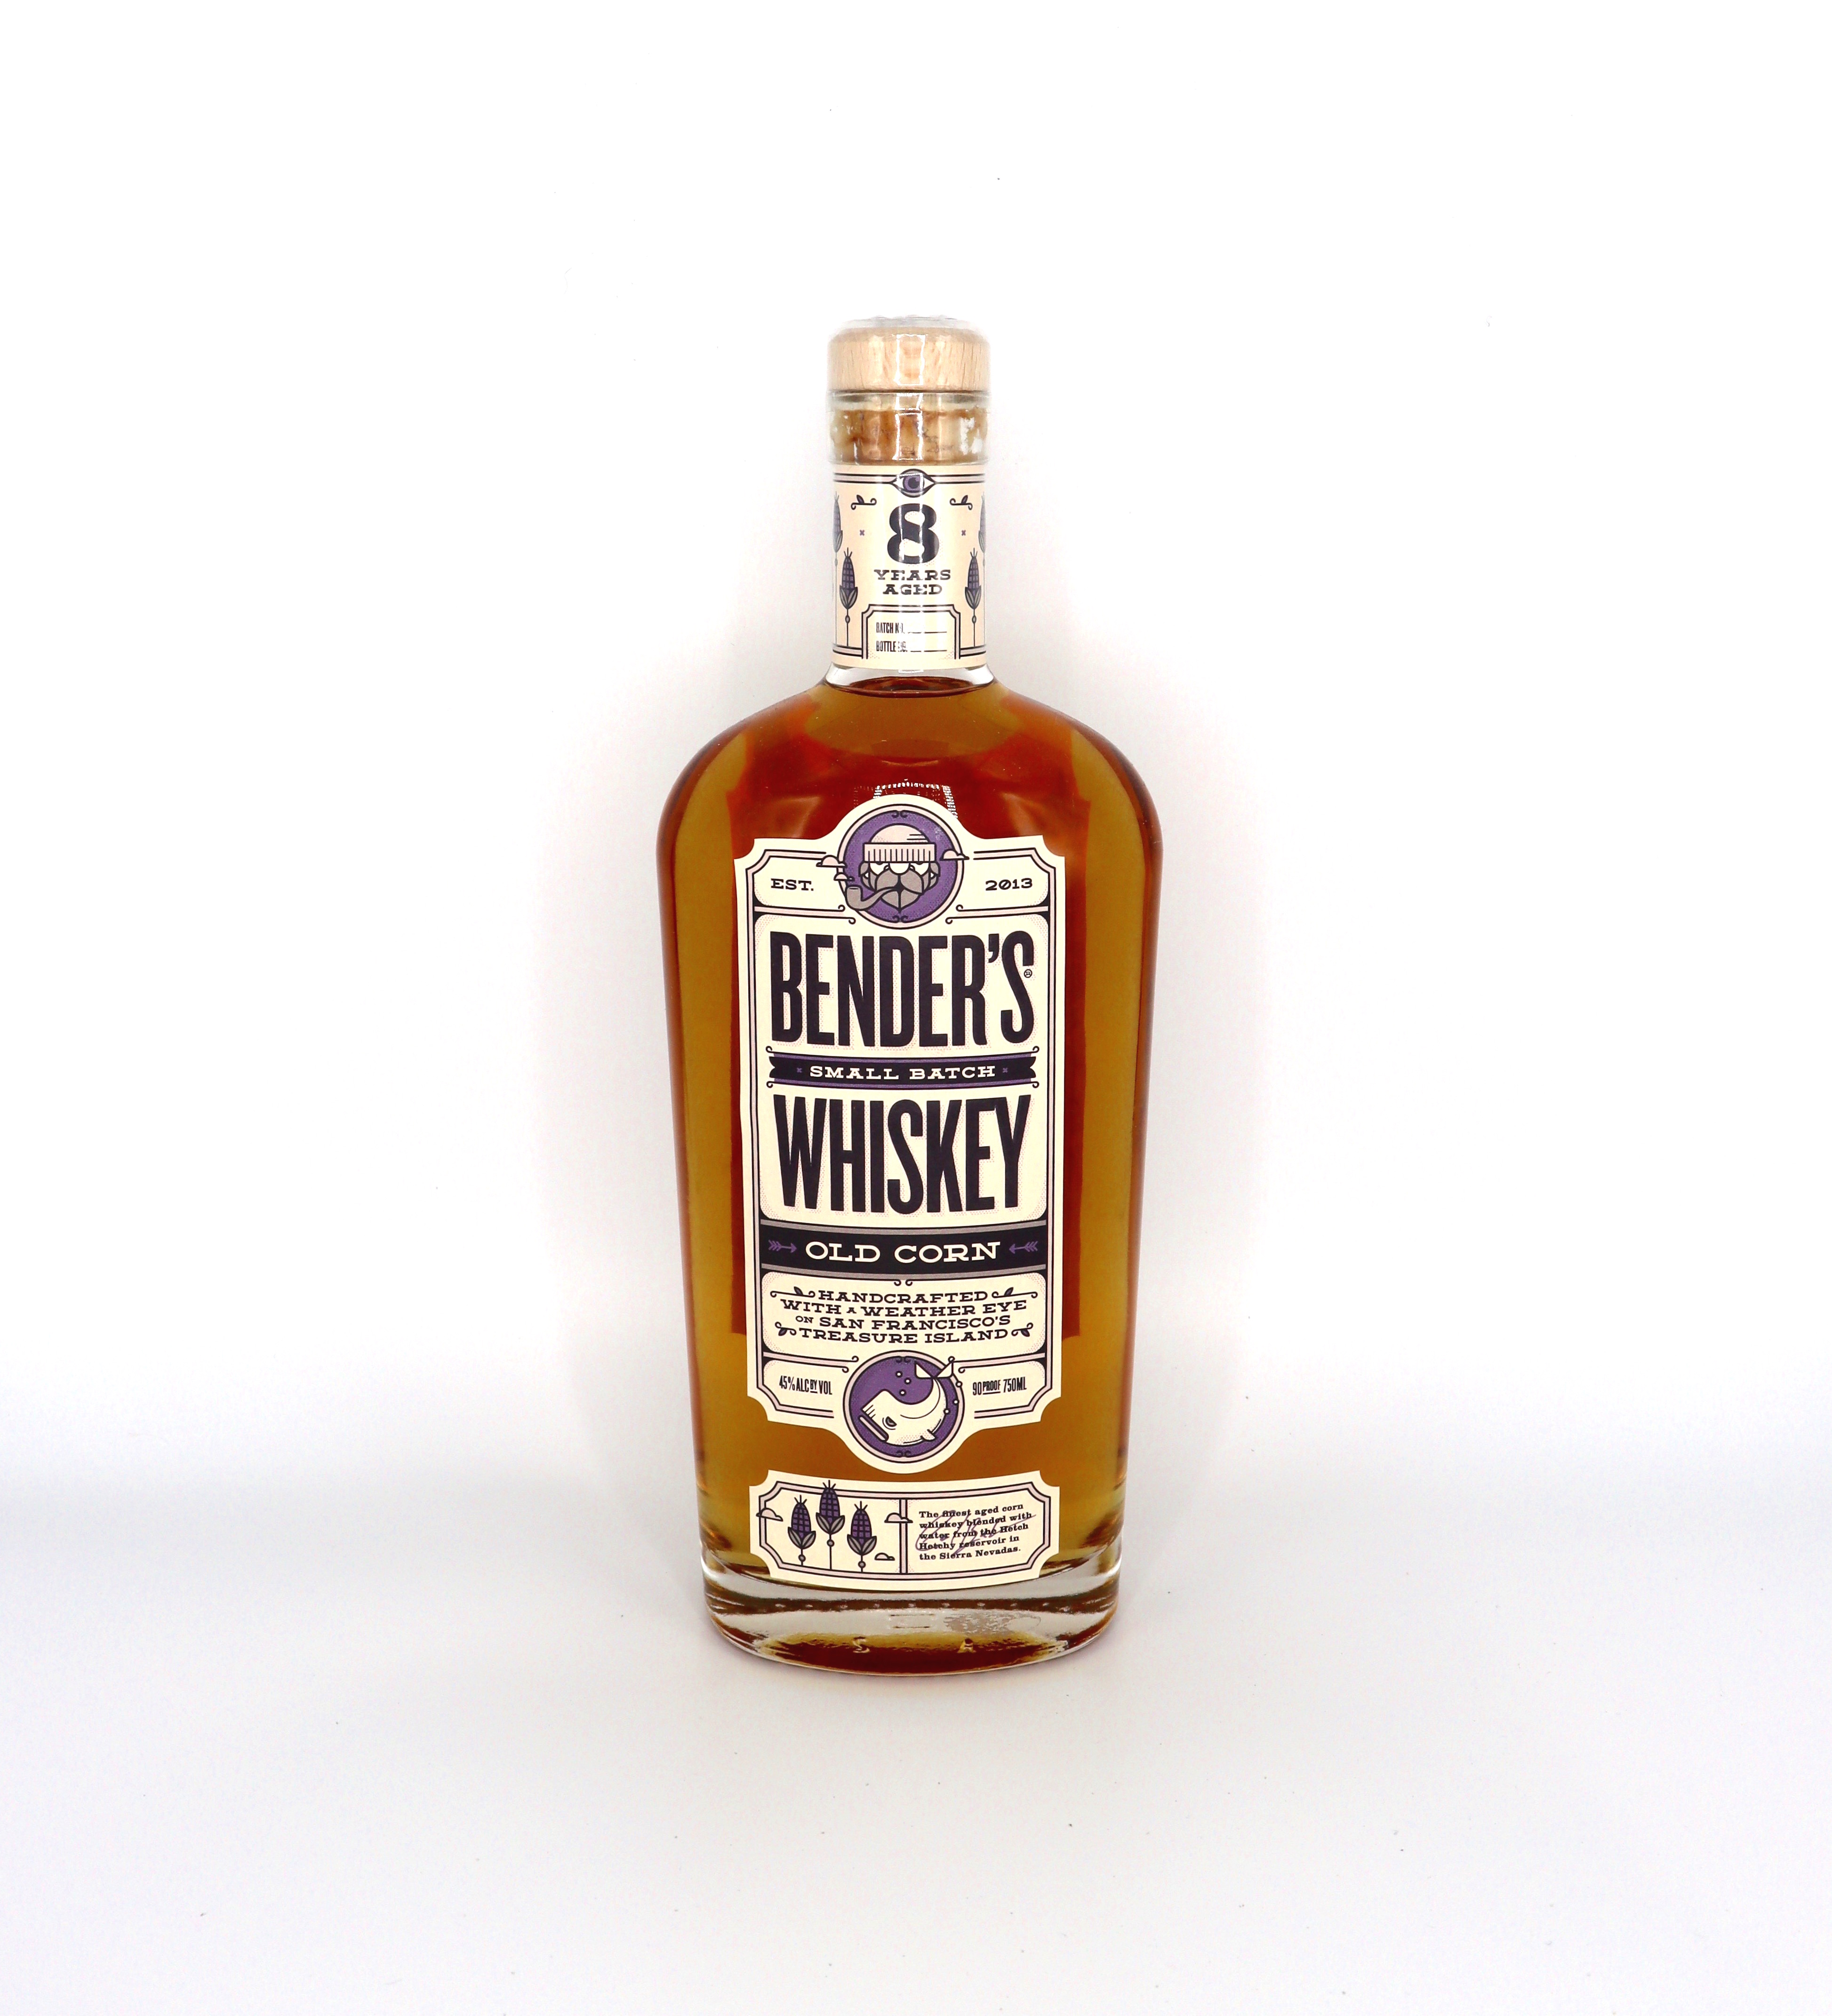 Bender's 8 year Small Batch Old Corn Whiskey 90 proof